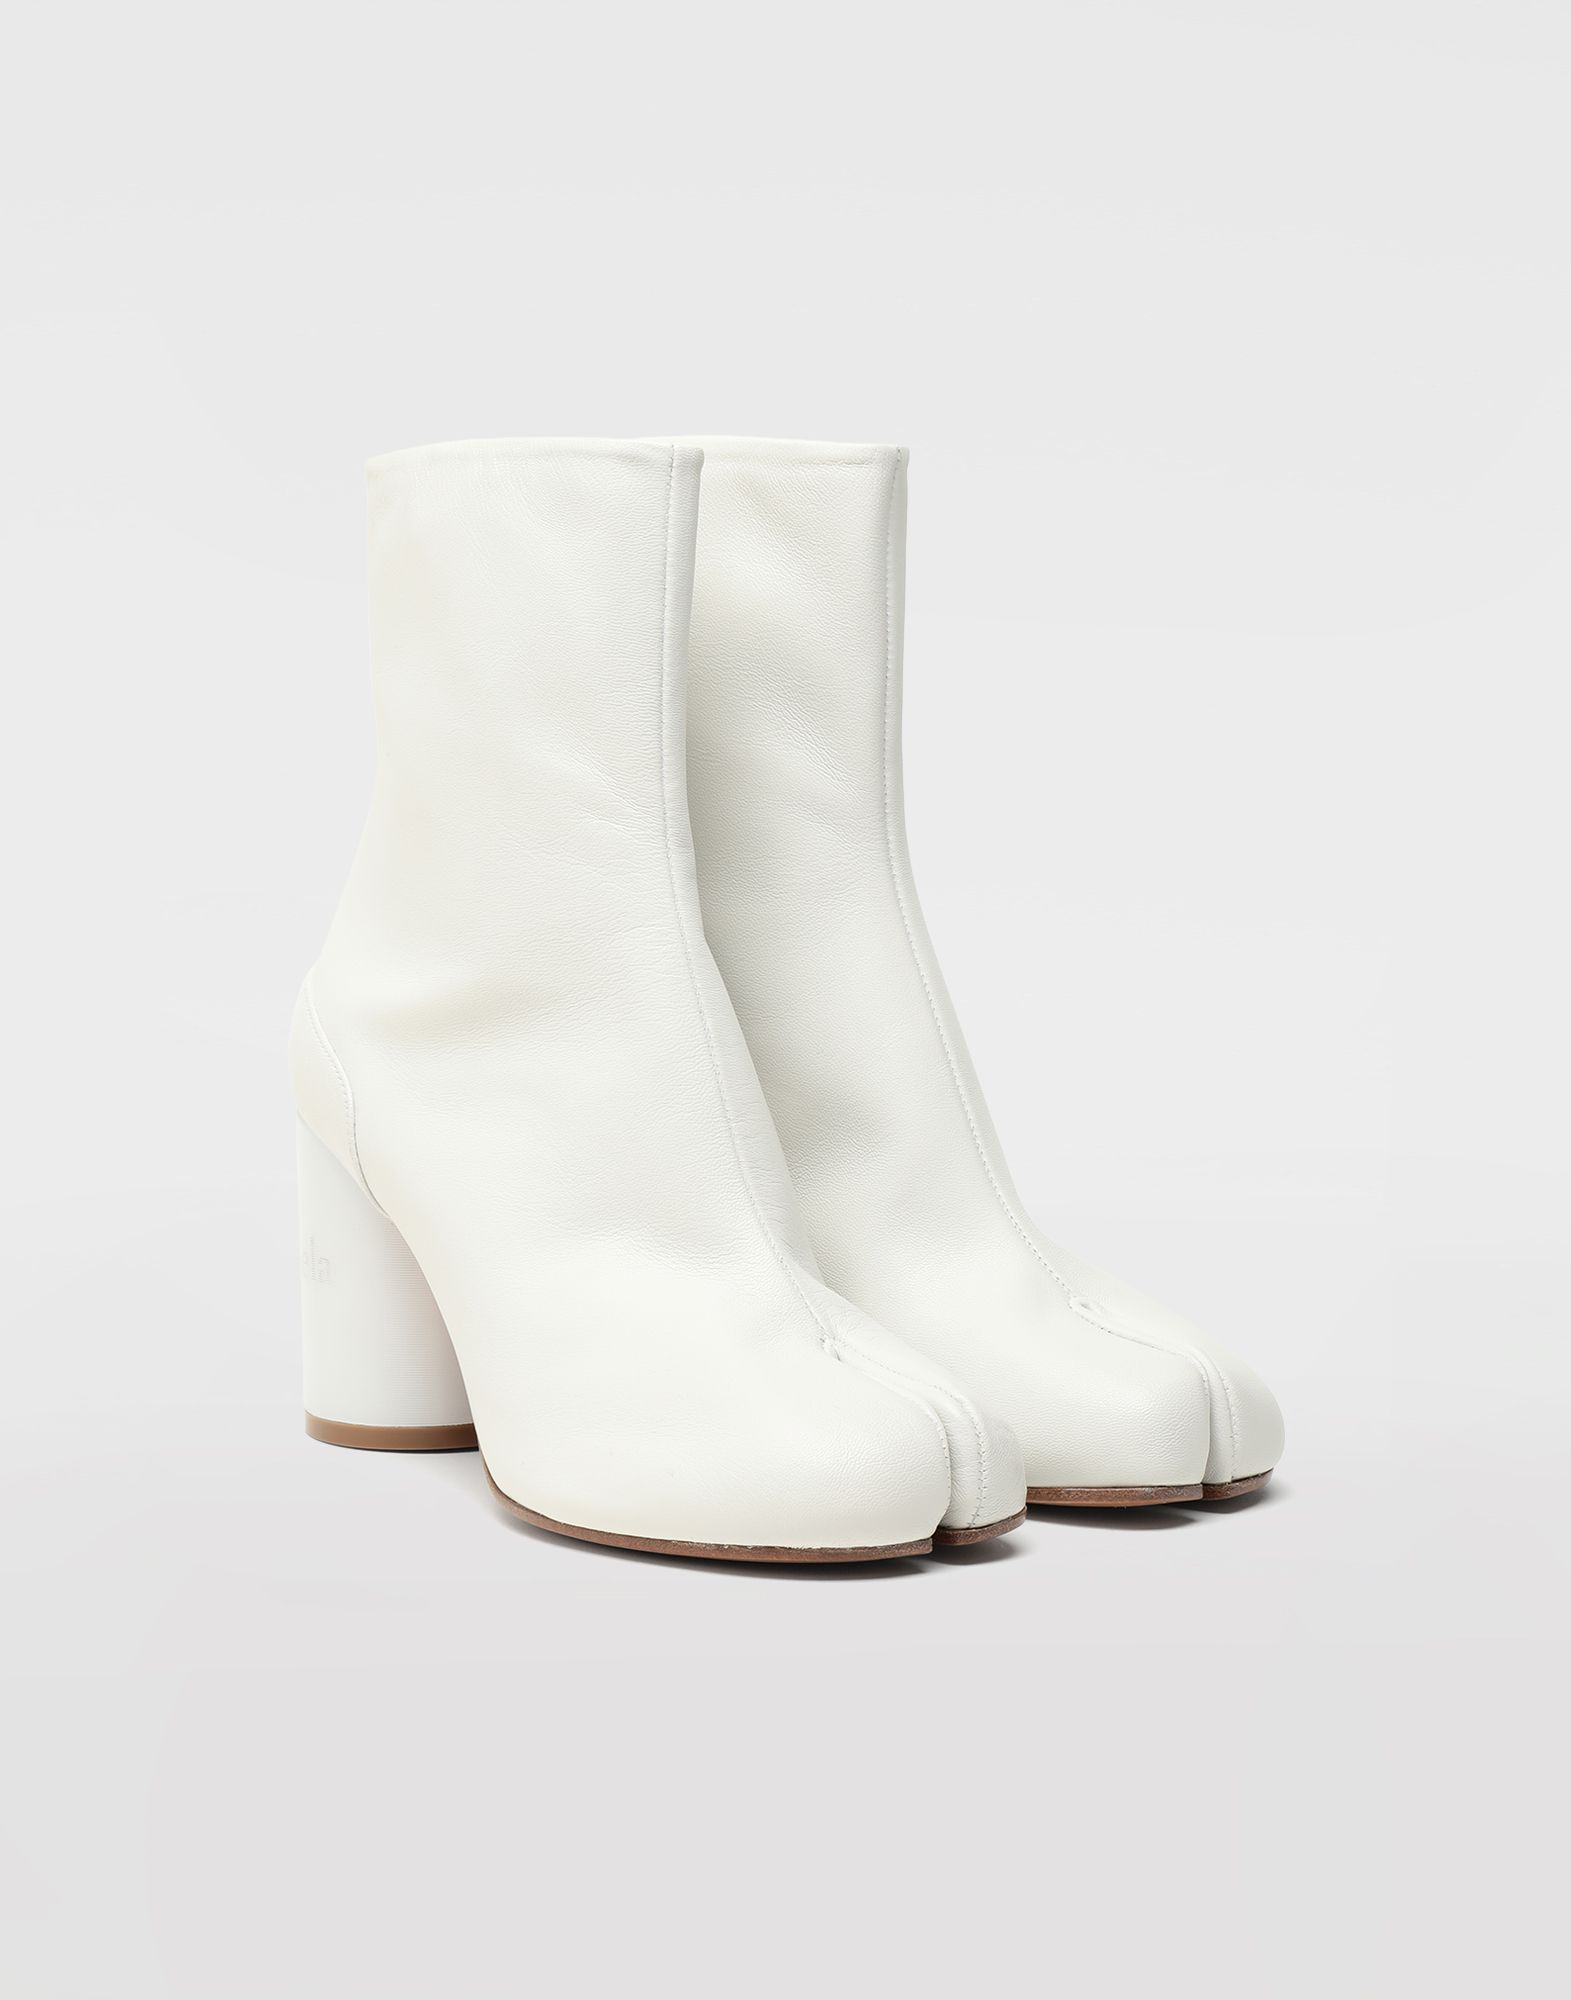 MAISON MARGIELA Tabi hologram ankle boots Tabi boots & Ankle boots Woman r